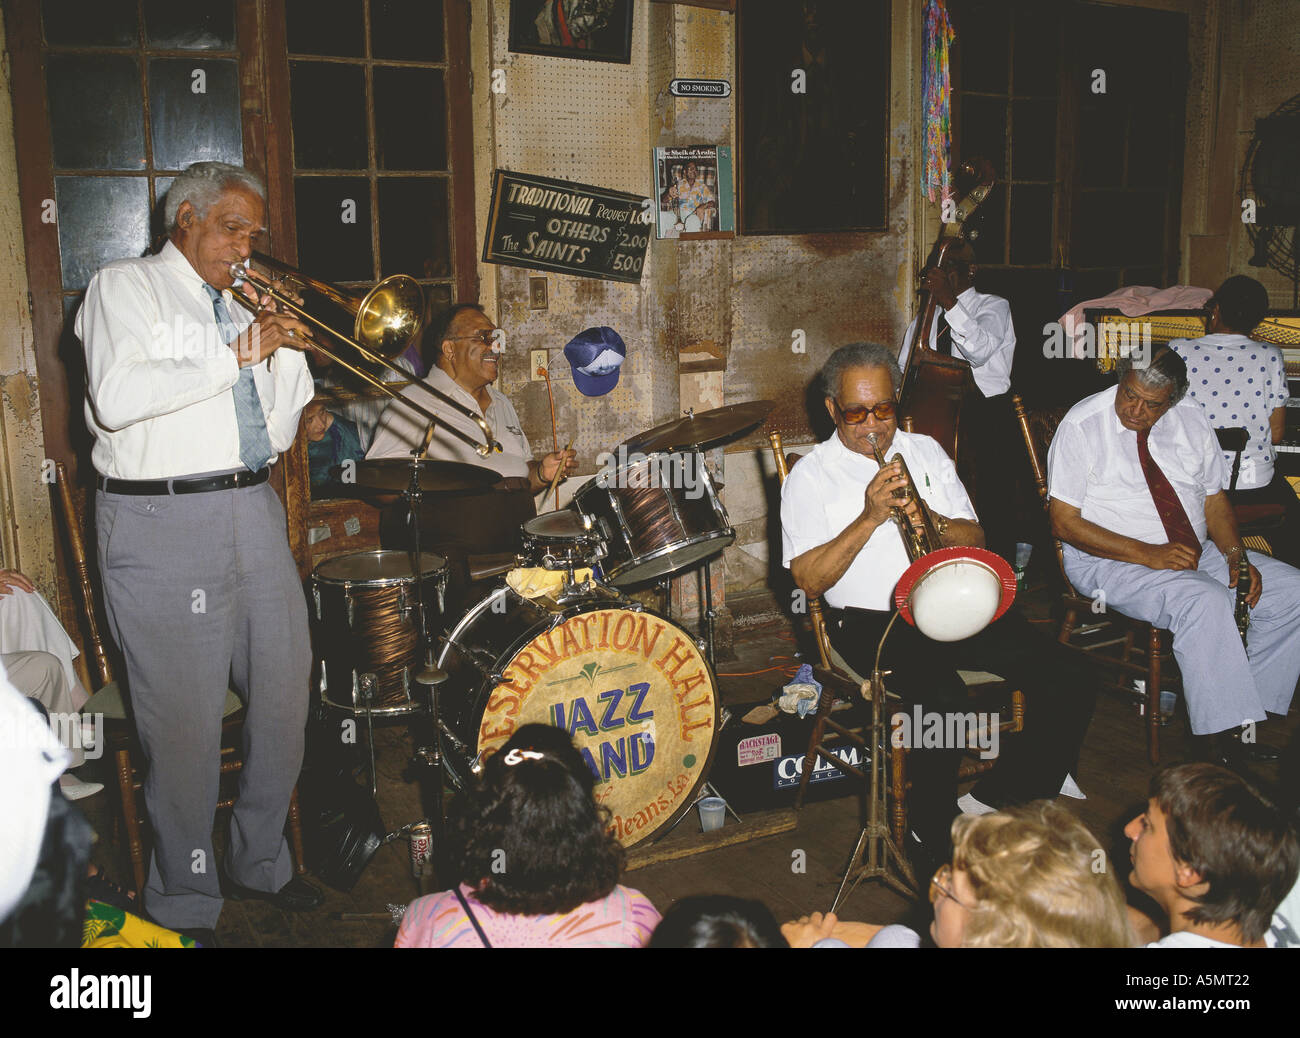 Jazz band playing at historic Preservation Hall on Bourbon Street New Orleans Louisiana USA - Stock Image